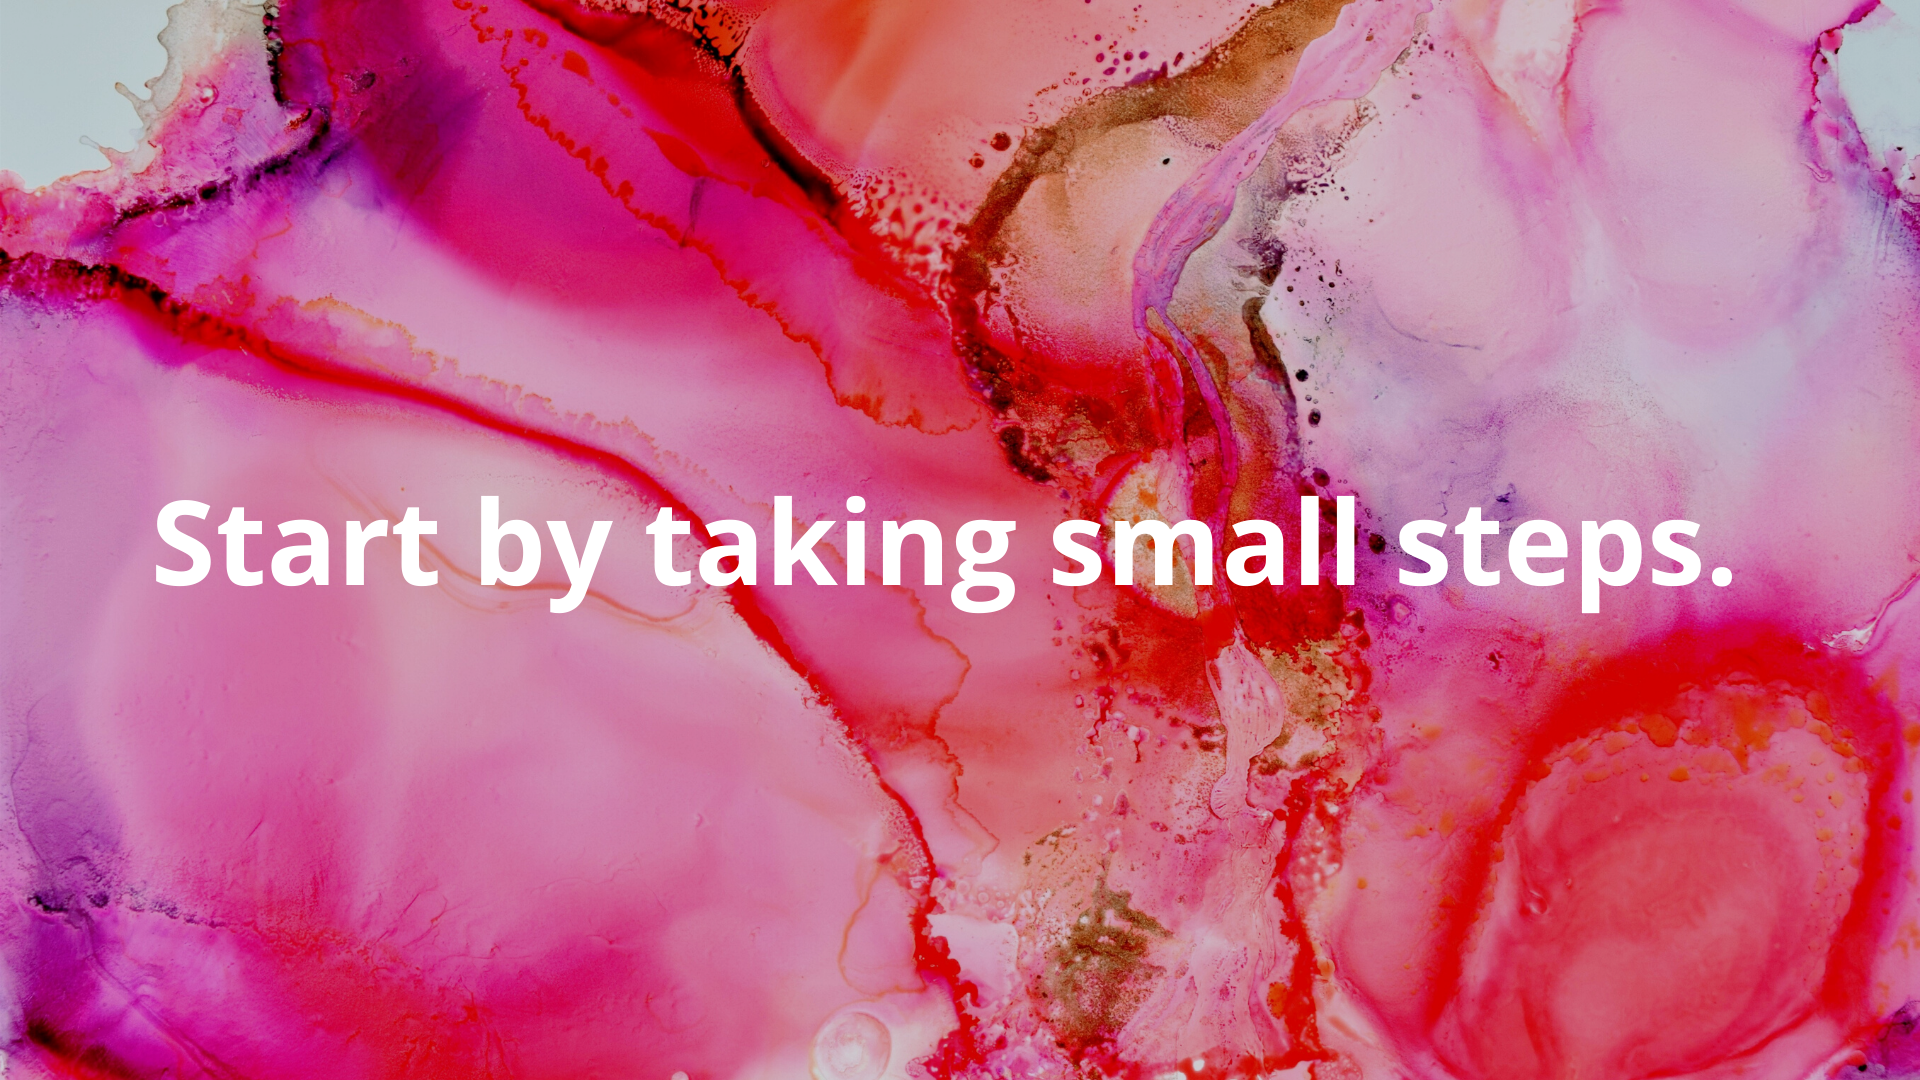 Start by taking small steps.